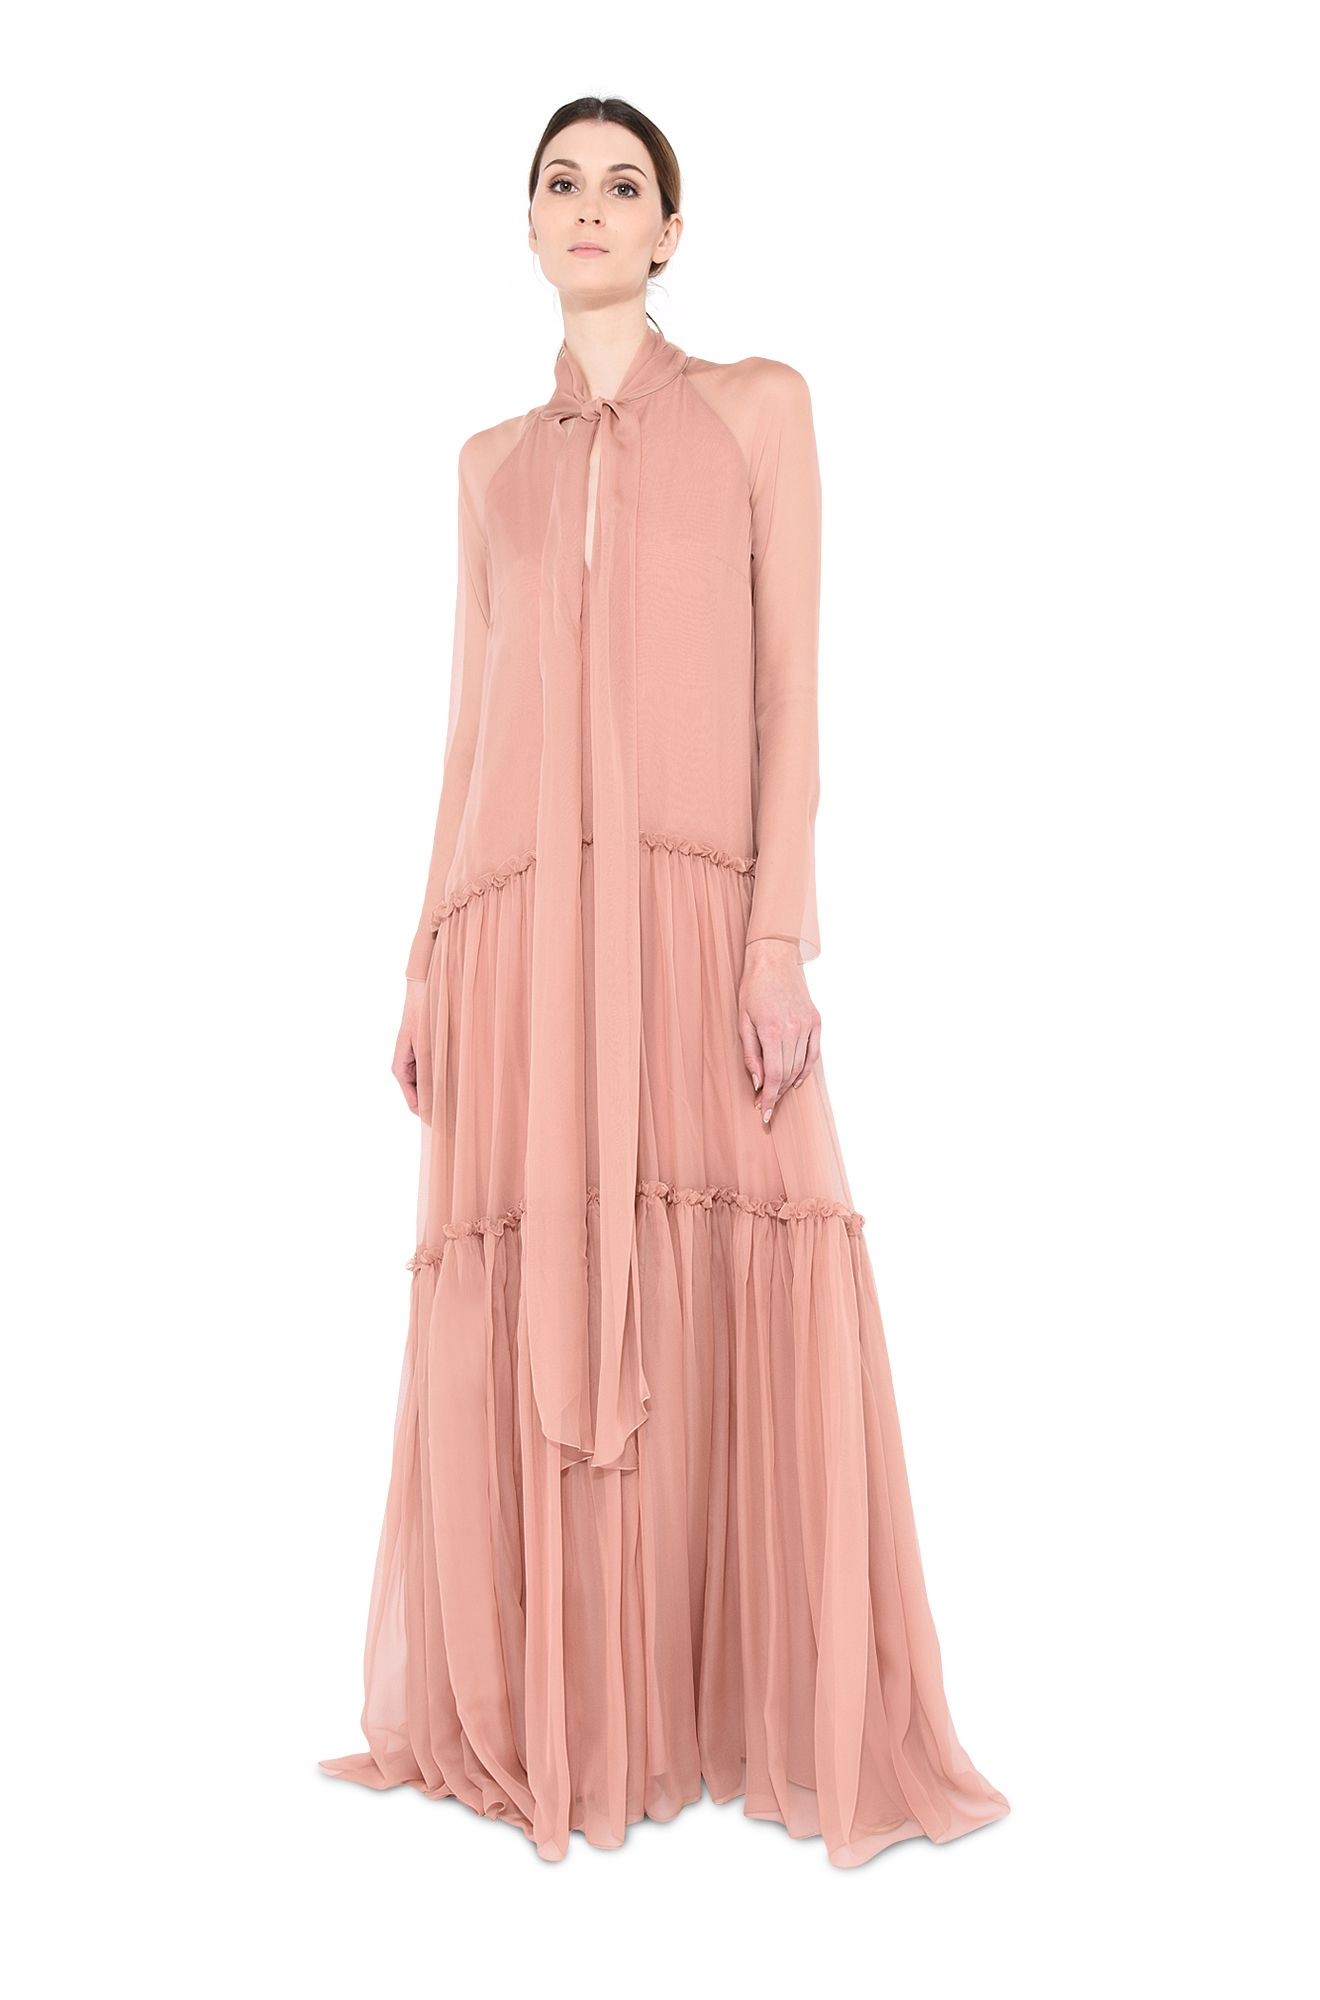 Chiffon dress with bow